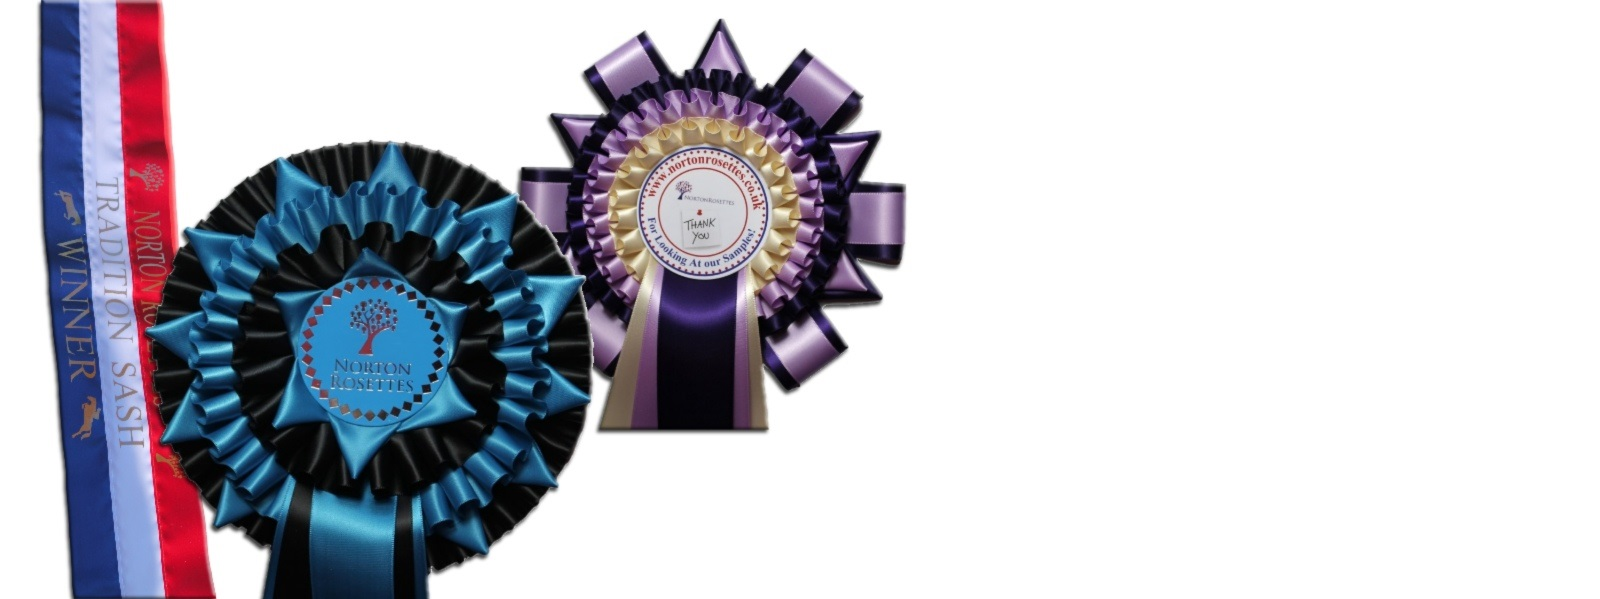 Rosettes sample box available on request